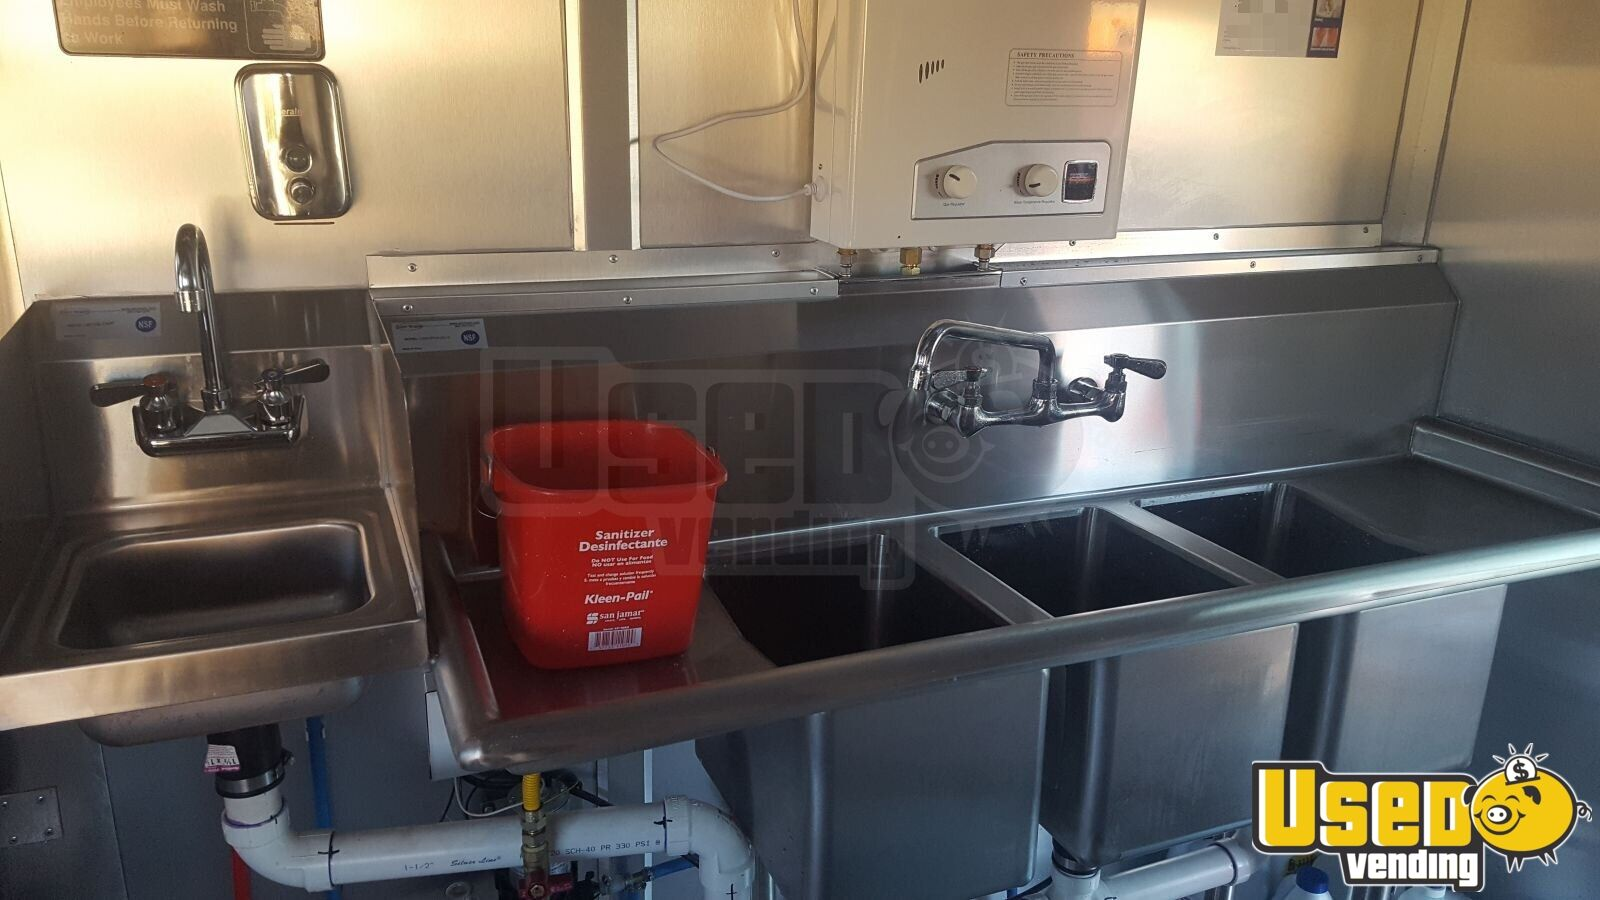 2003 Gmc P-42 Food Truck Fryer North Carolina Gas Engine for Sale - 12